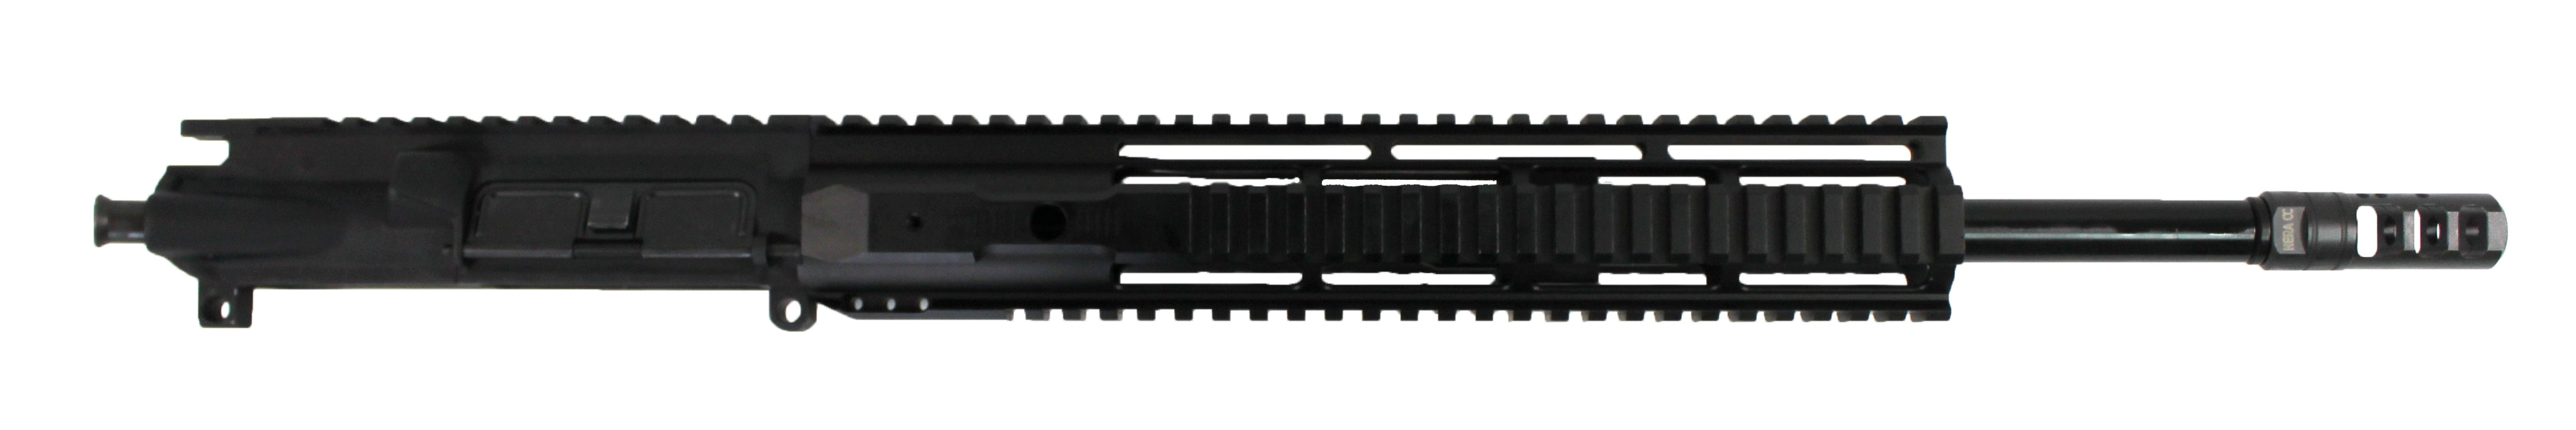 ar 15 upper assembly 16 223 5 56 1 8 hera competition compensator 12 hera arms irs handguard rail